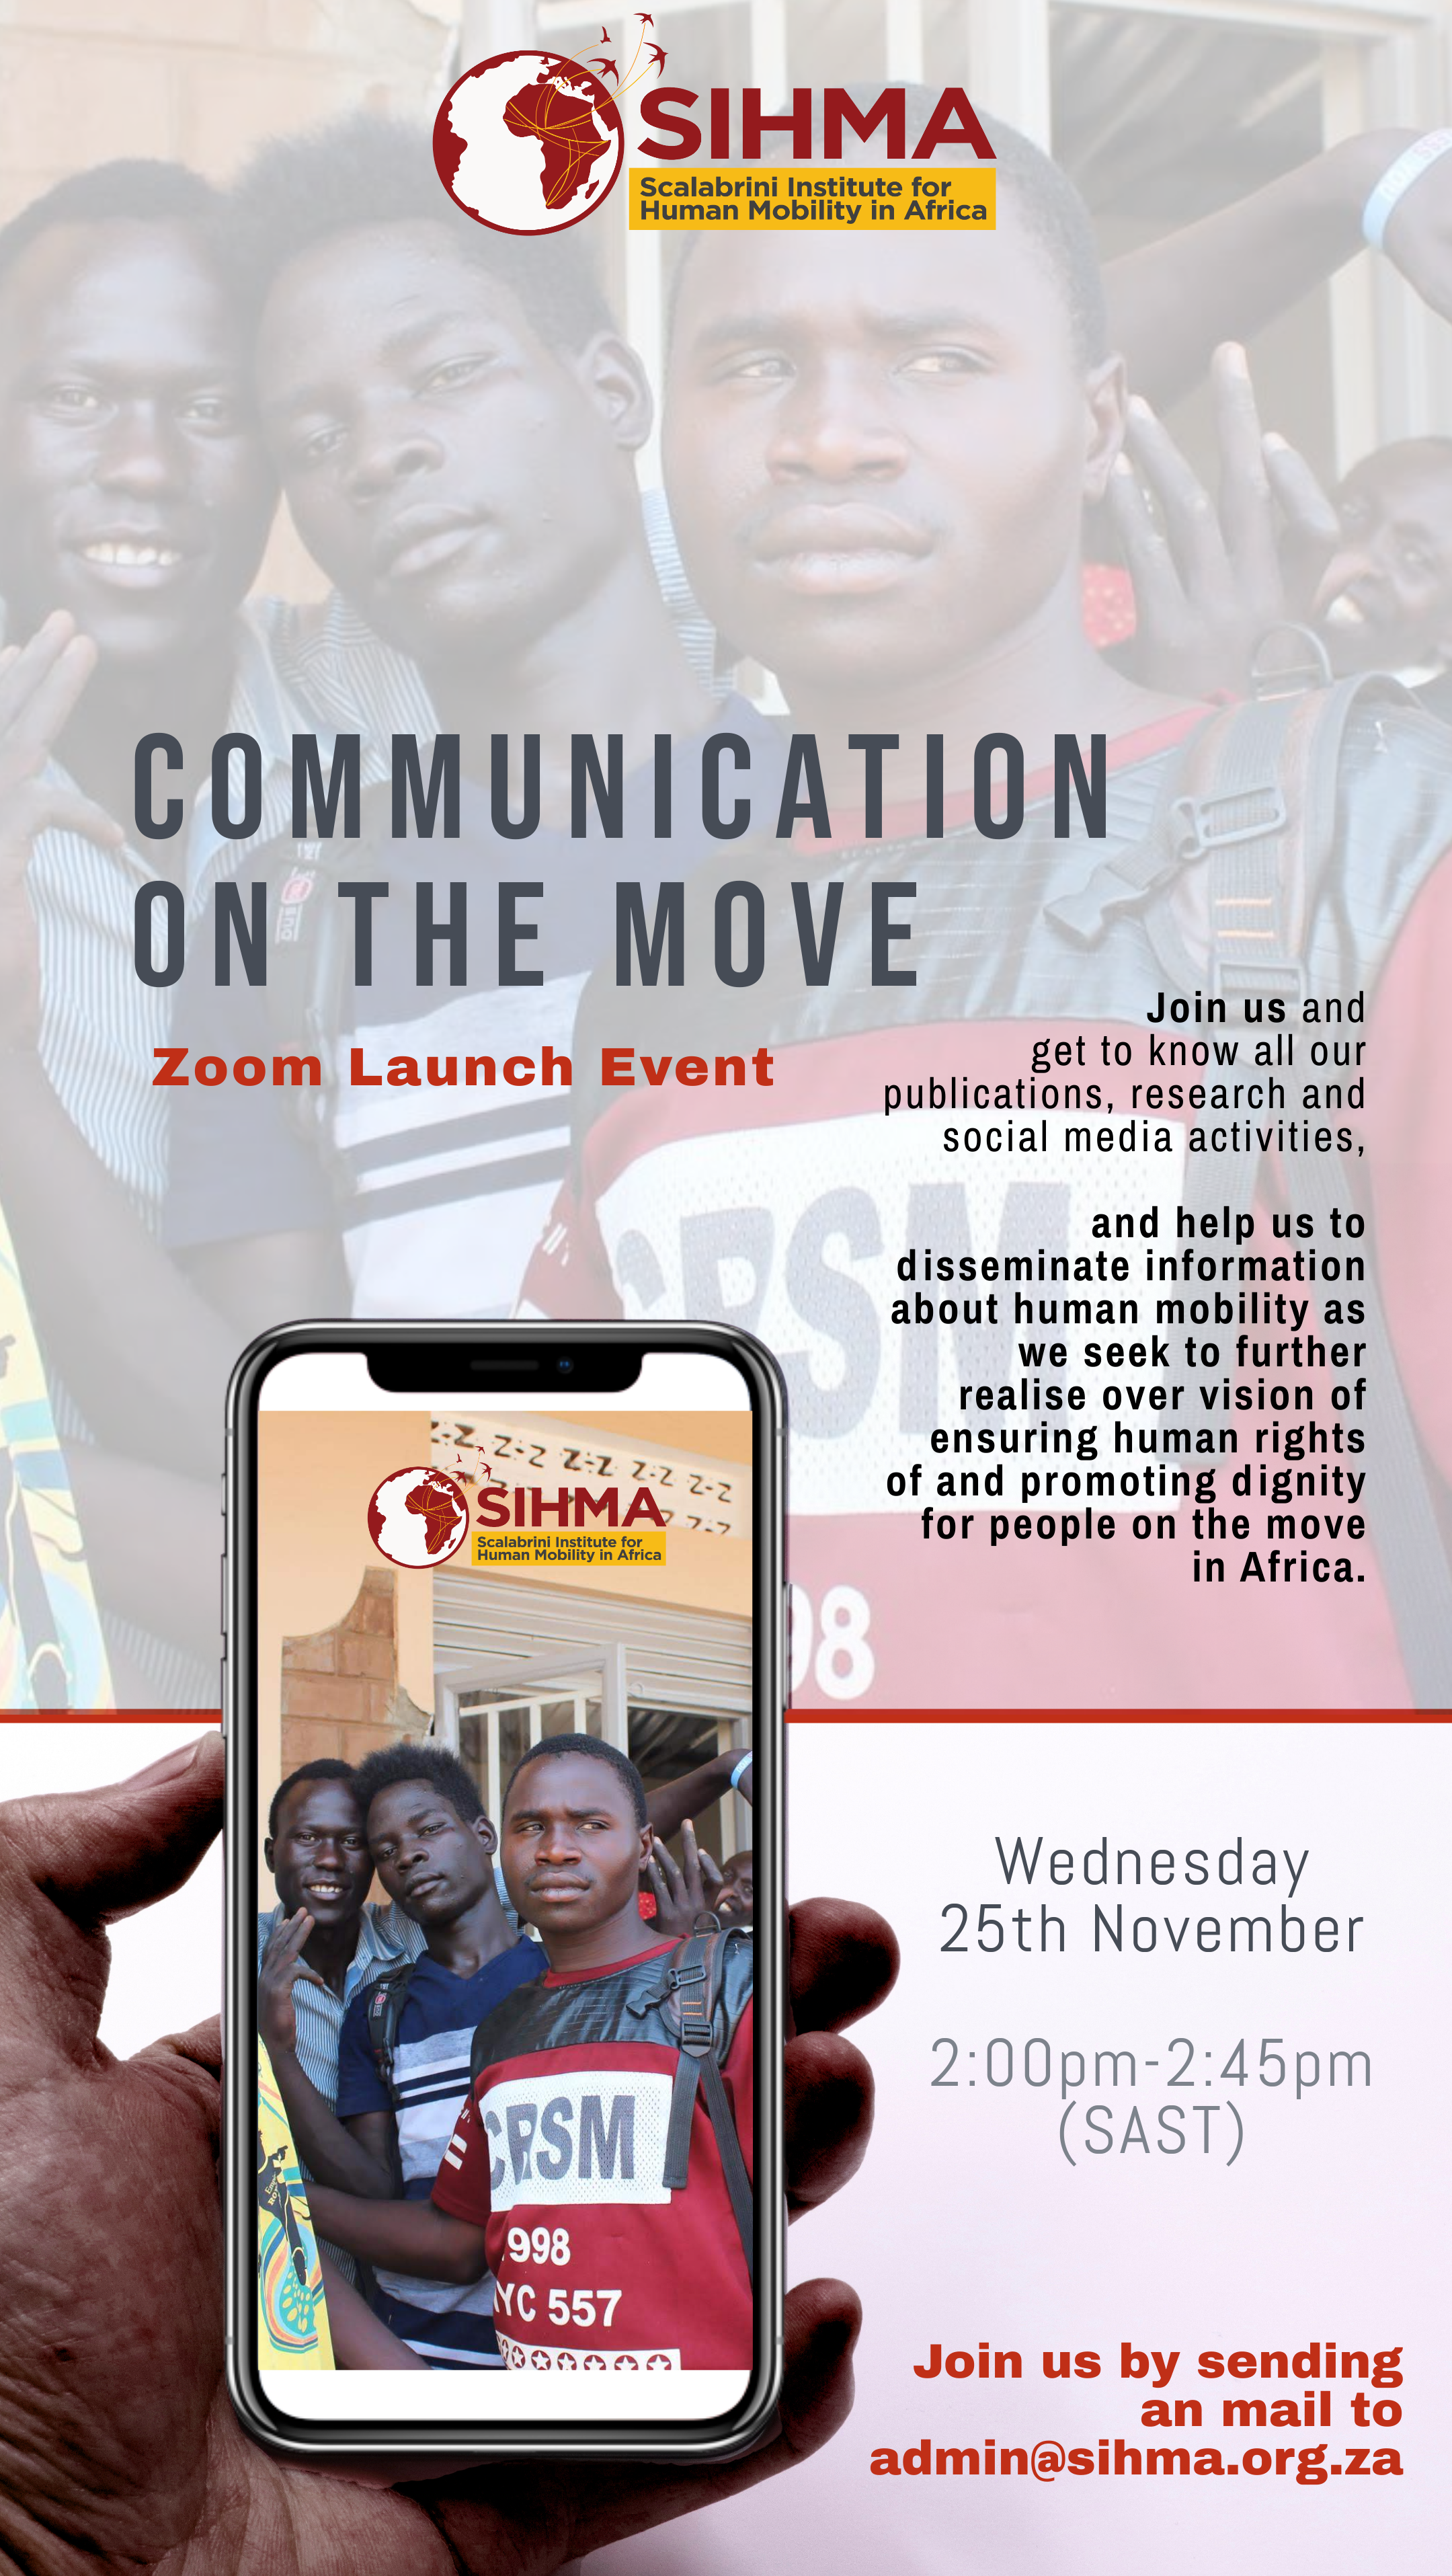 https://www.sihma.org.za/photos/shares/SIHMA Event Invitation.png